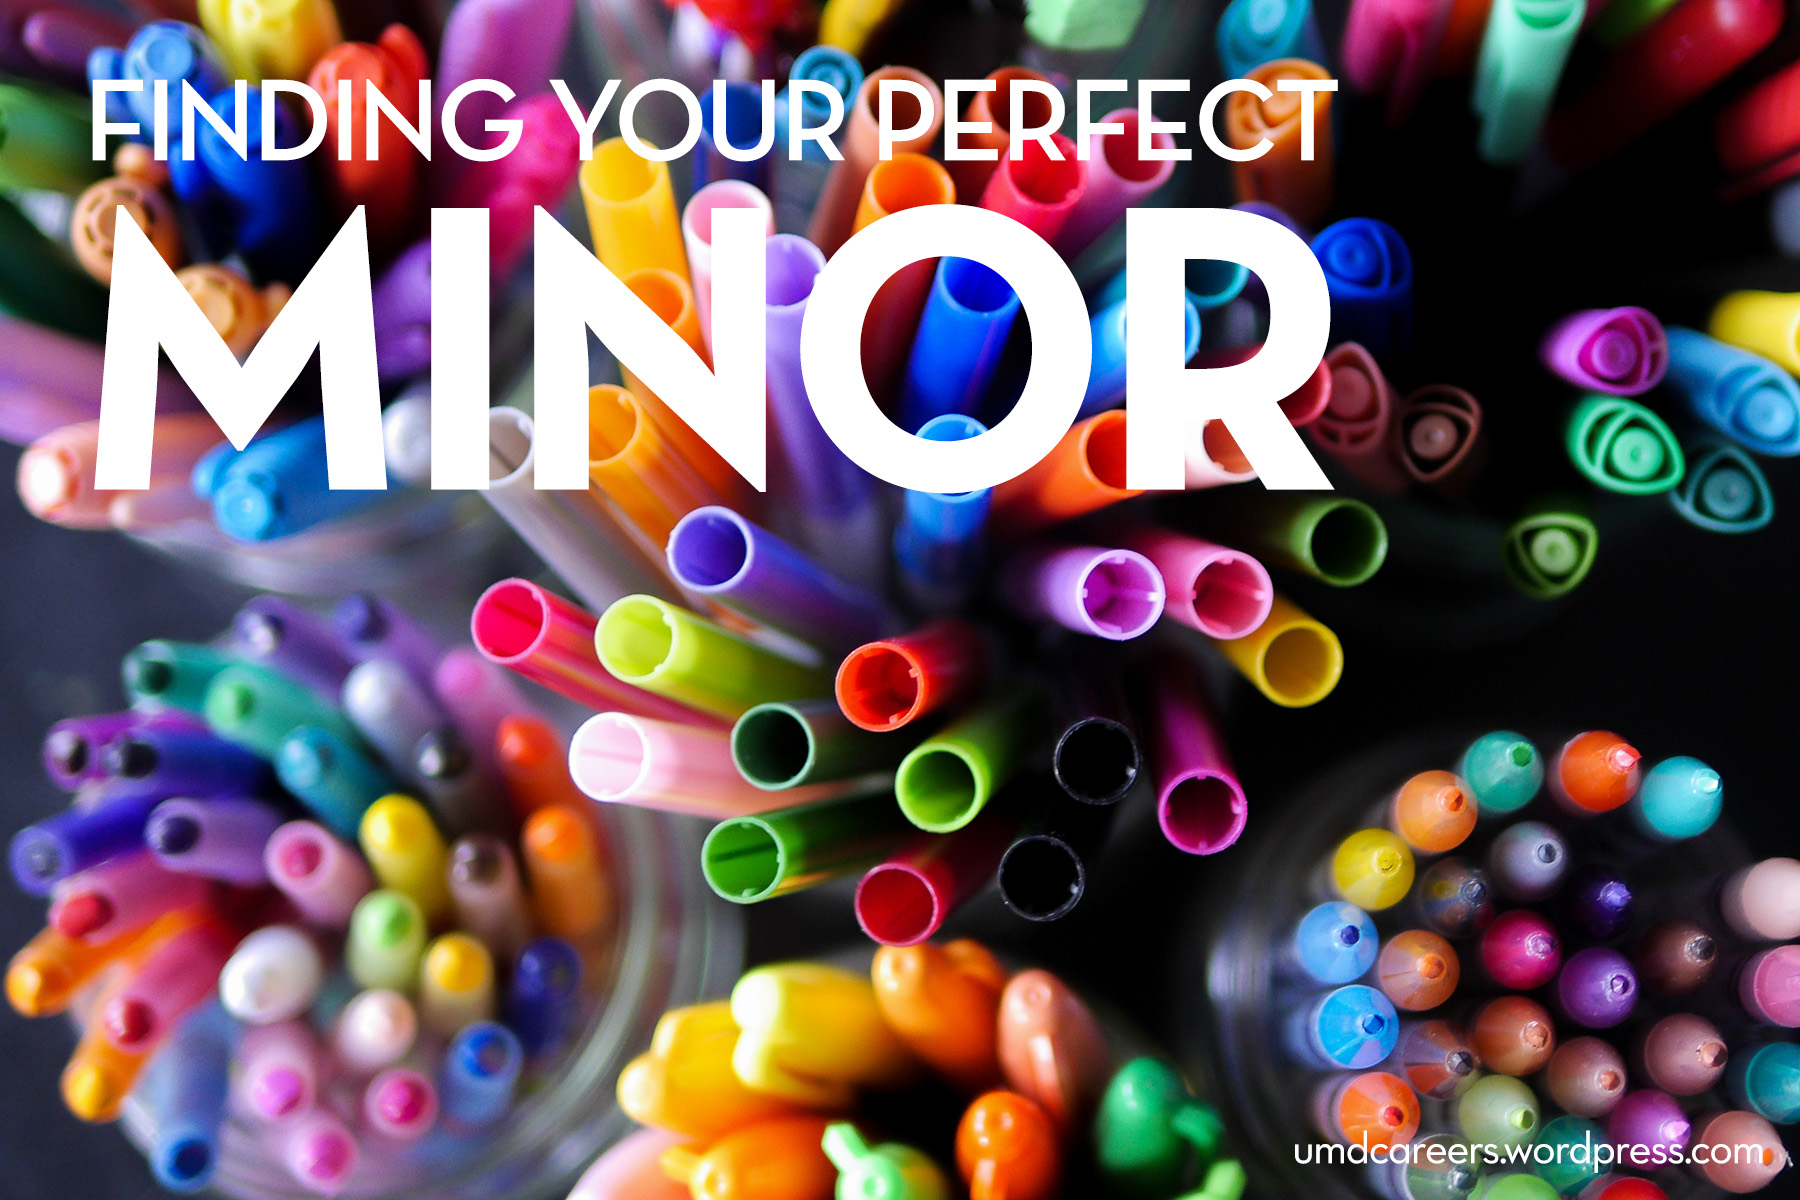 Image: looking down at groupings of pens and markers Text: Finding your perfect minor